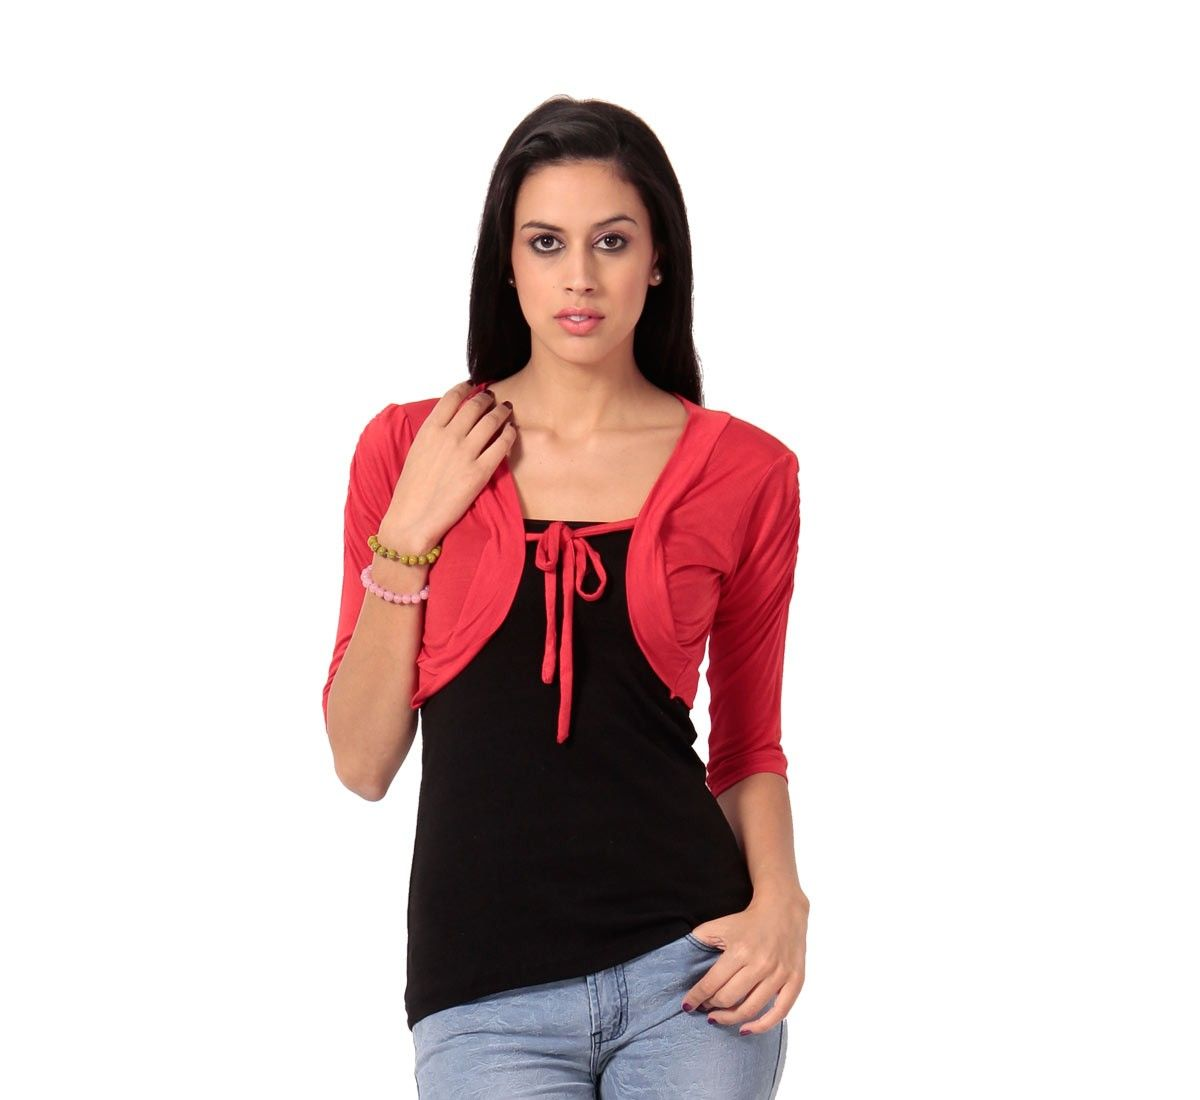 594387e4eb Buy Teemoods Stylish Red Short Shrug online for girls in India at  reasonable price